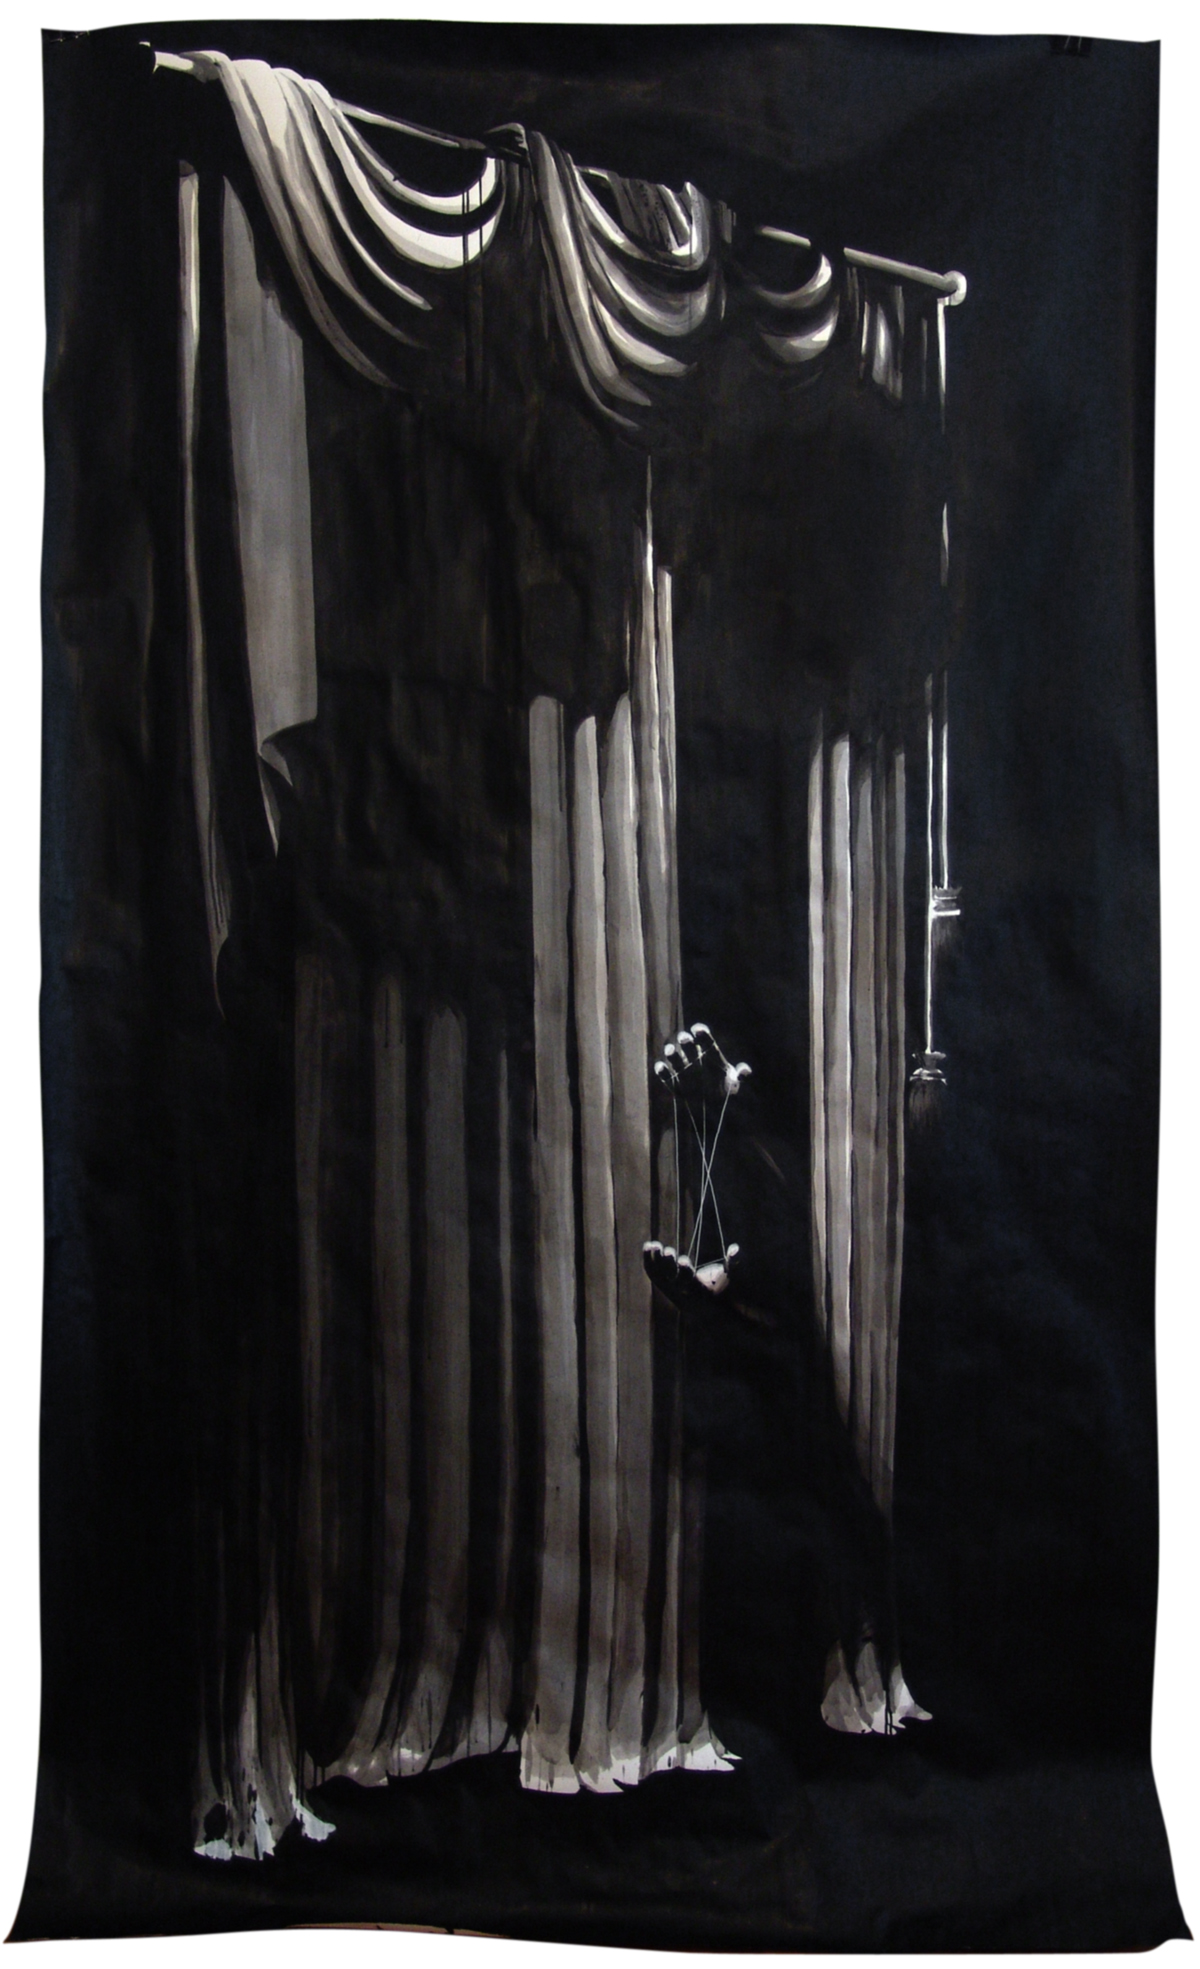 TRICK, Indian ink & acrylic paint on paper, 1m50 x 2m30, 2010, Alexandra Crouwers